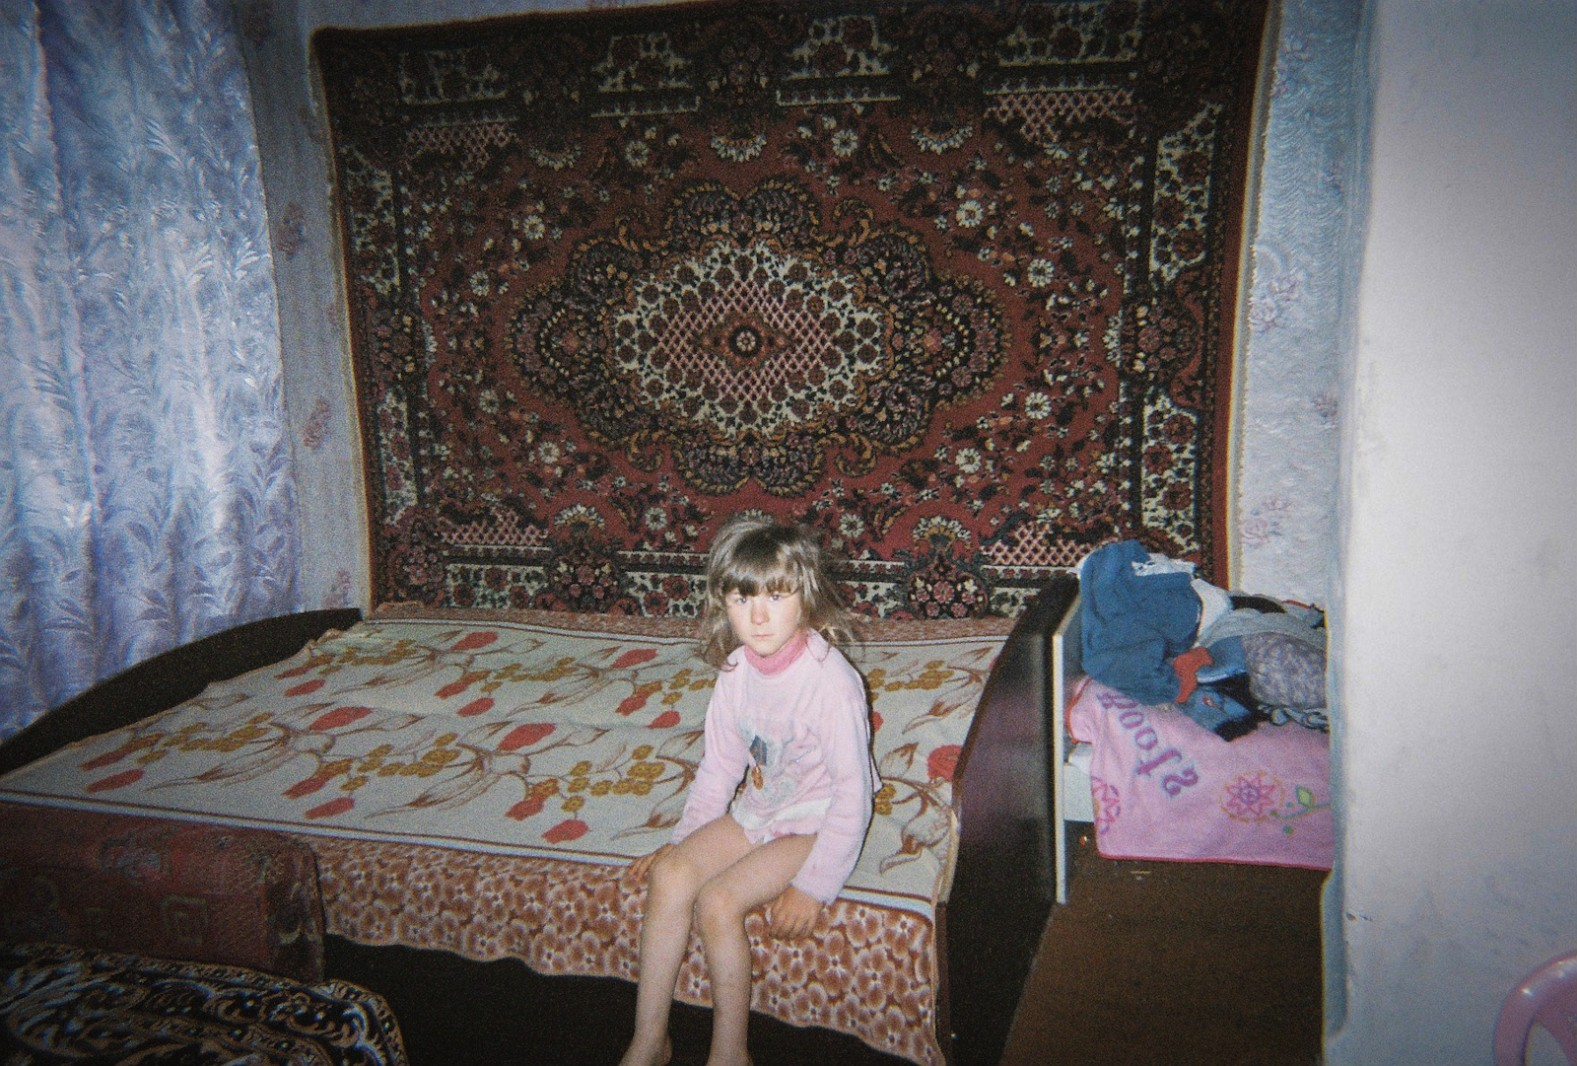 A young girl stares at her mother, who is photographing her sitting on a bed